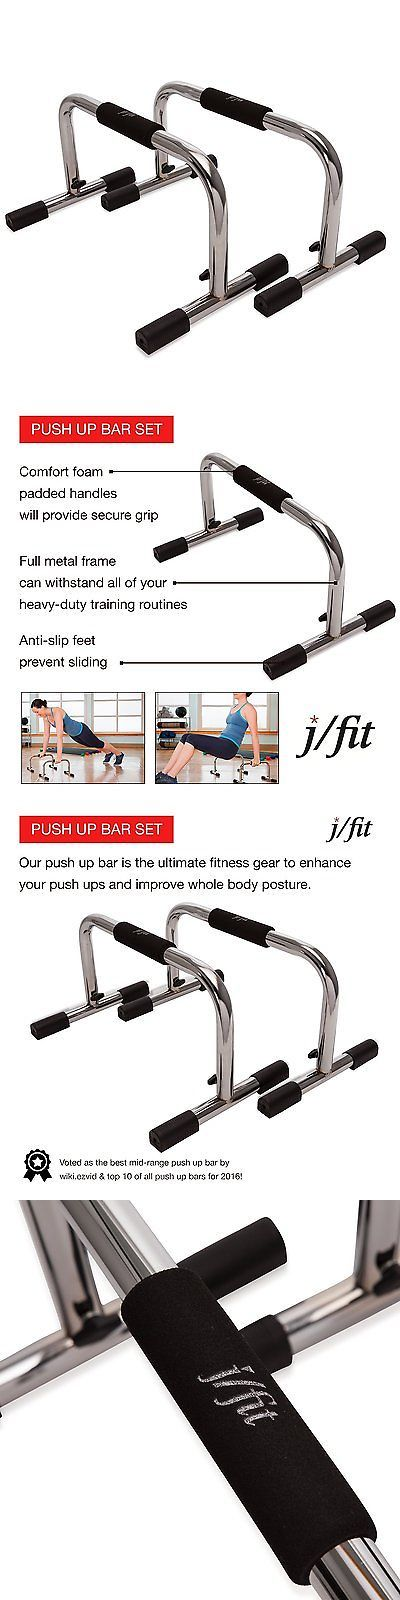 Push Up Stands 158925: J Fit Tall 9? Pro Push Up Bar Stand | Durable Metal Fitness Equipment And Padded -> BUY IT NOW ONLY: $36.75 on eBay!